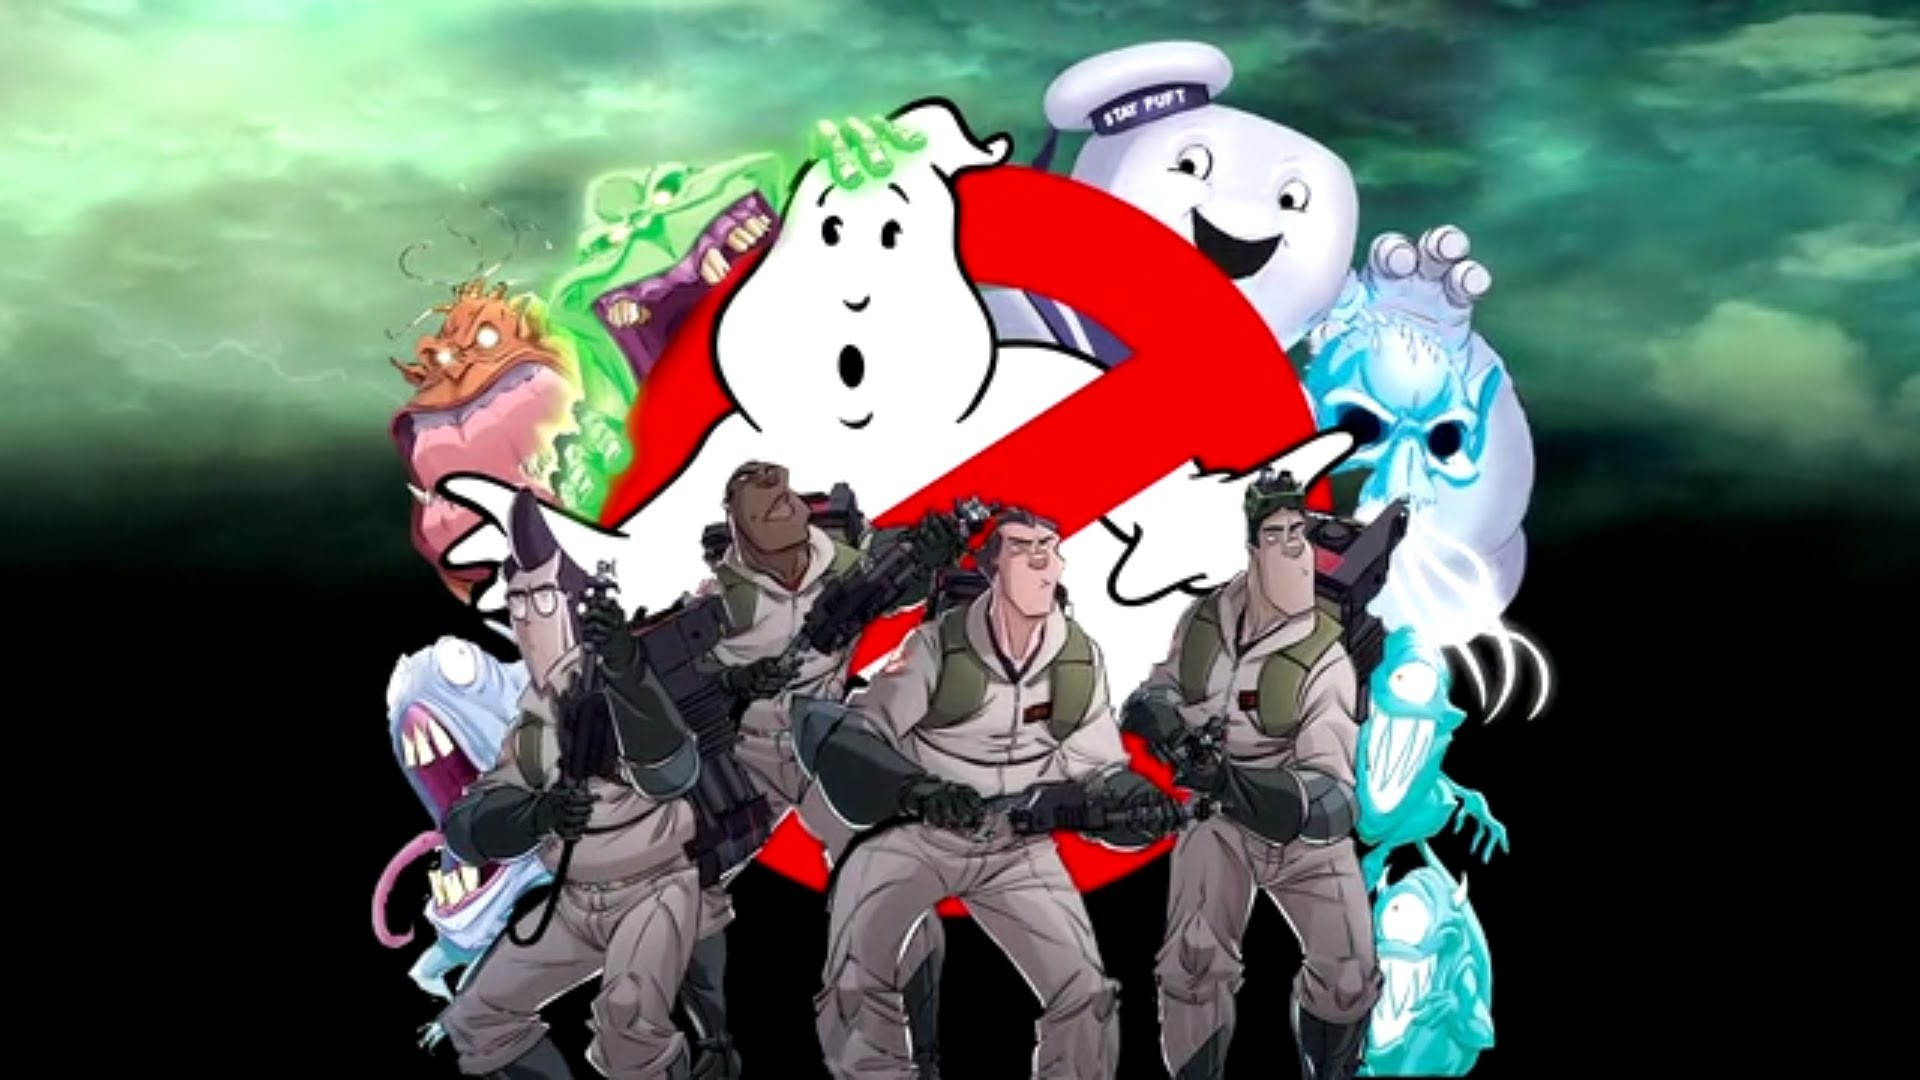 Ghostbuster wallpaper 74 images - Ghostbusters wallpaper ...